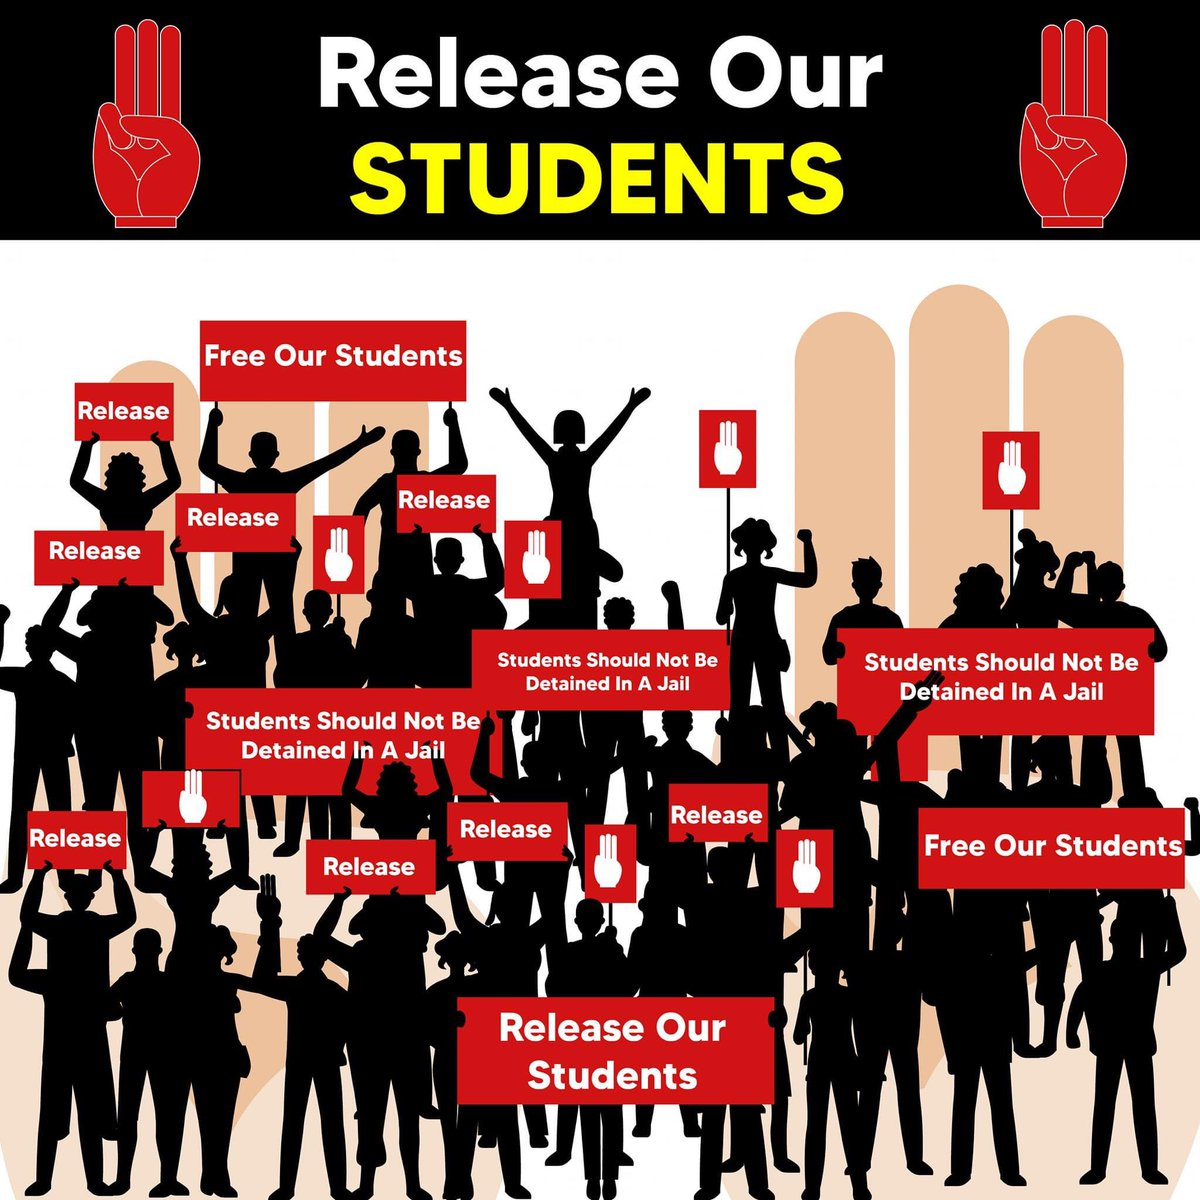 More than 400 students from different universities, including Yangon university, have been detained since 3rd March 2021. The students have been detained without reasonable ground. One cannot be detained for more than 24 hours but it has been 240 hours. https://t.co/irn2nyZNku